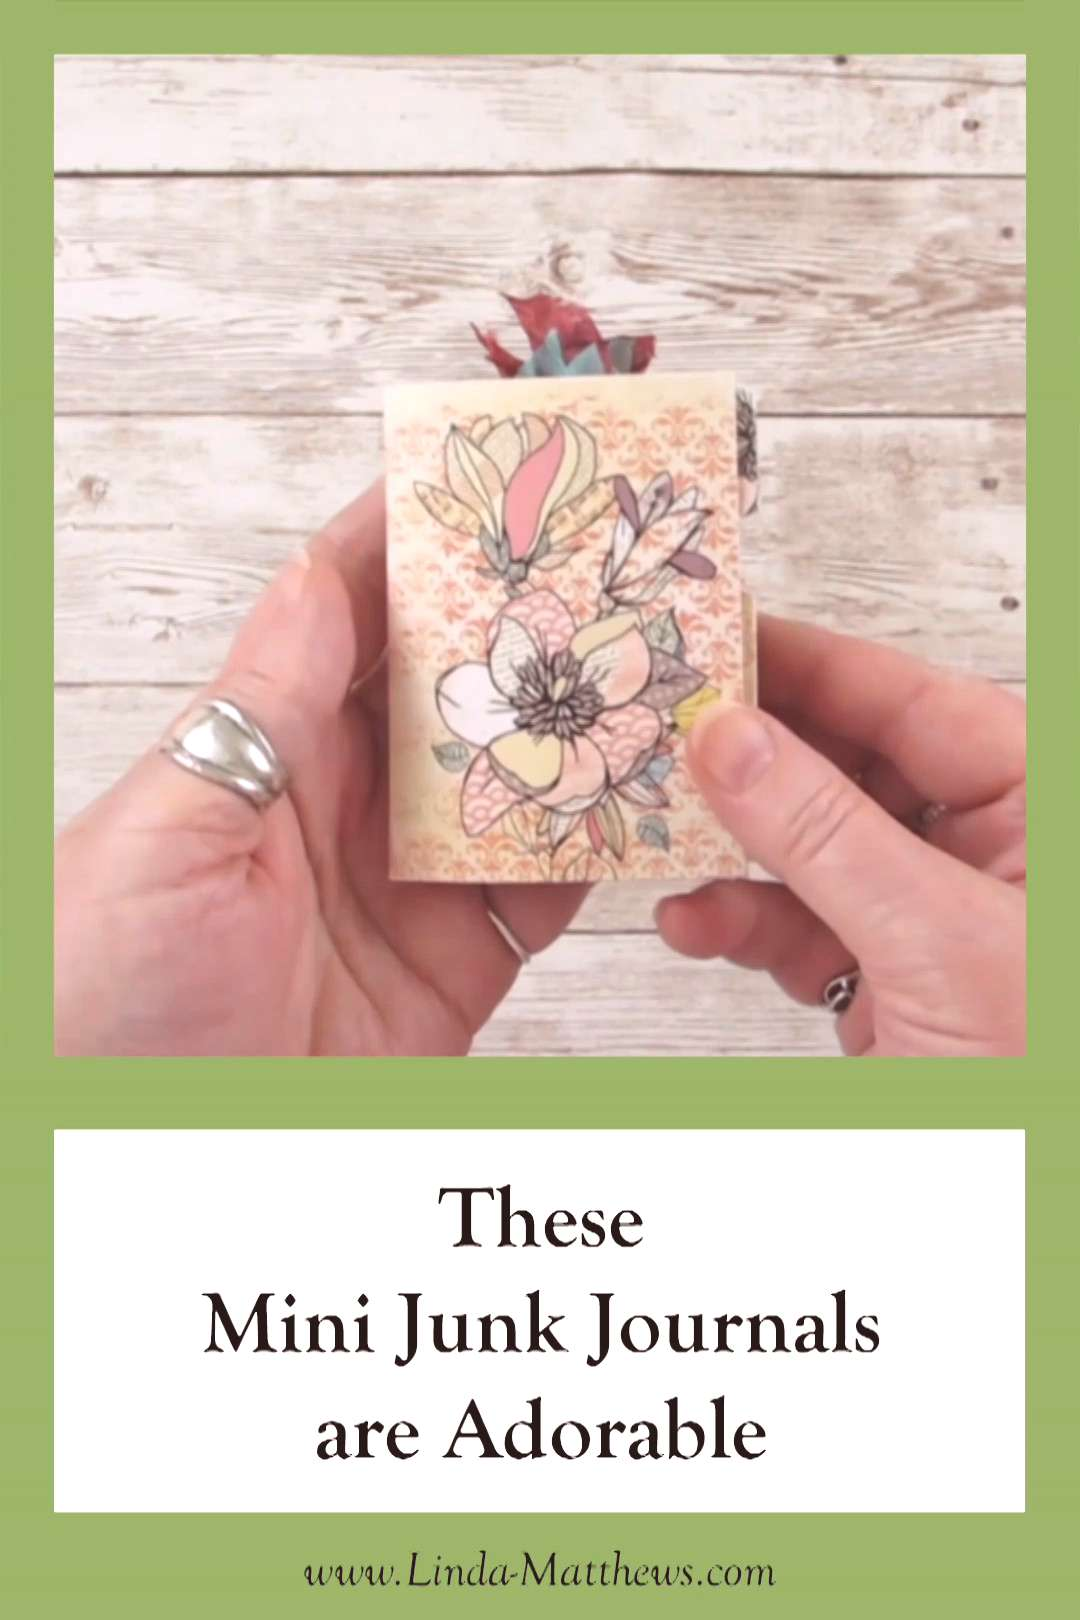 Mini Junk Journals Mini junk journals are fun and easy to make, and these printable mini-journals c